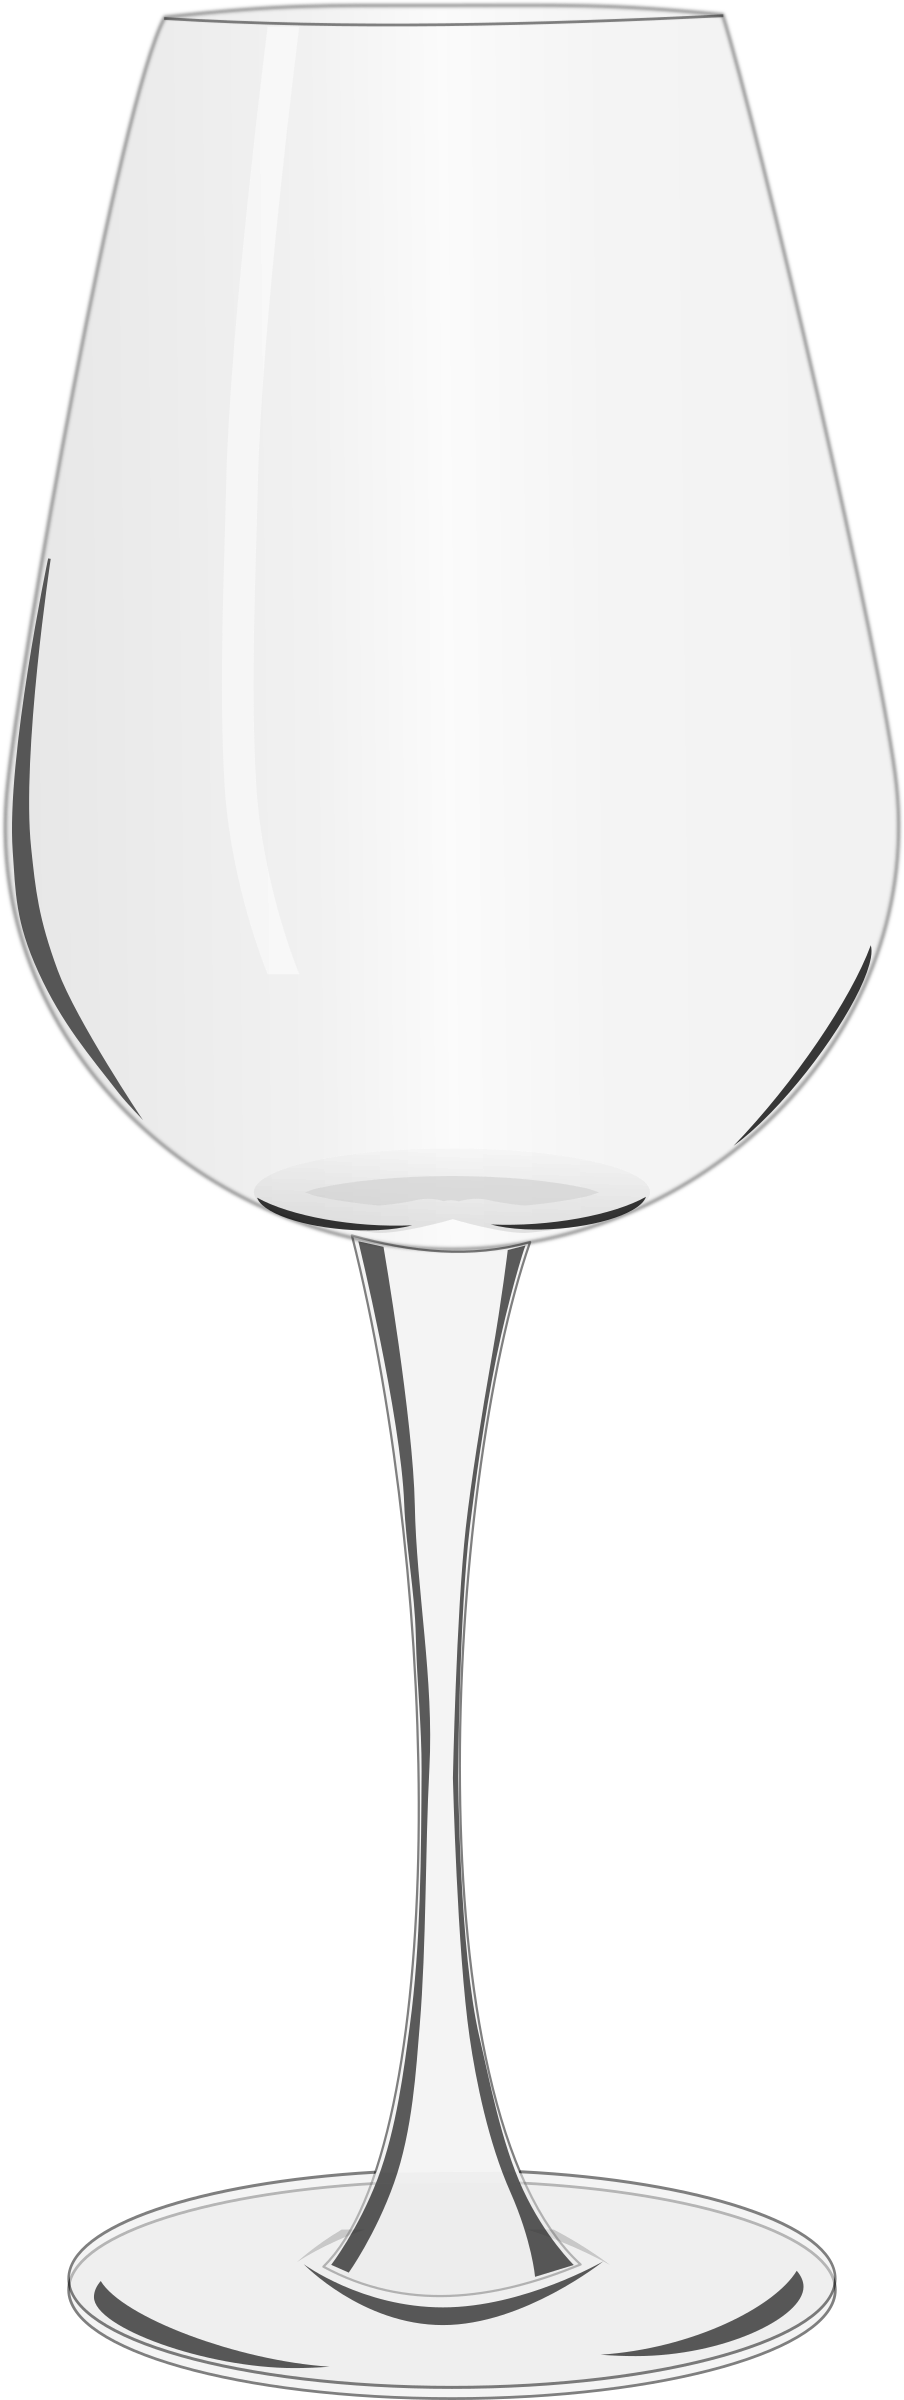 White wine glass by anonim76